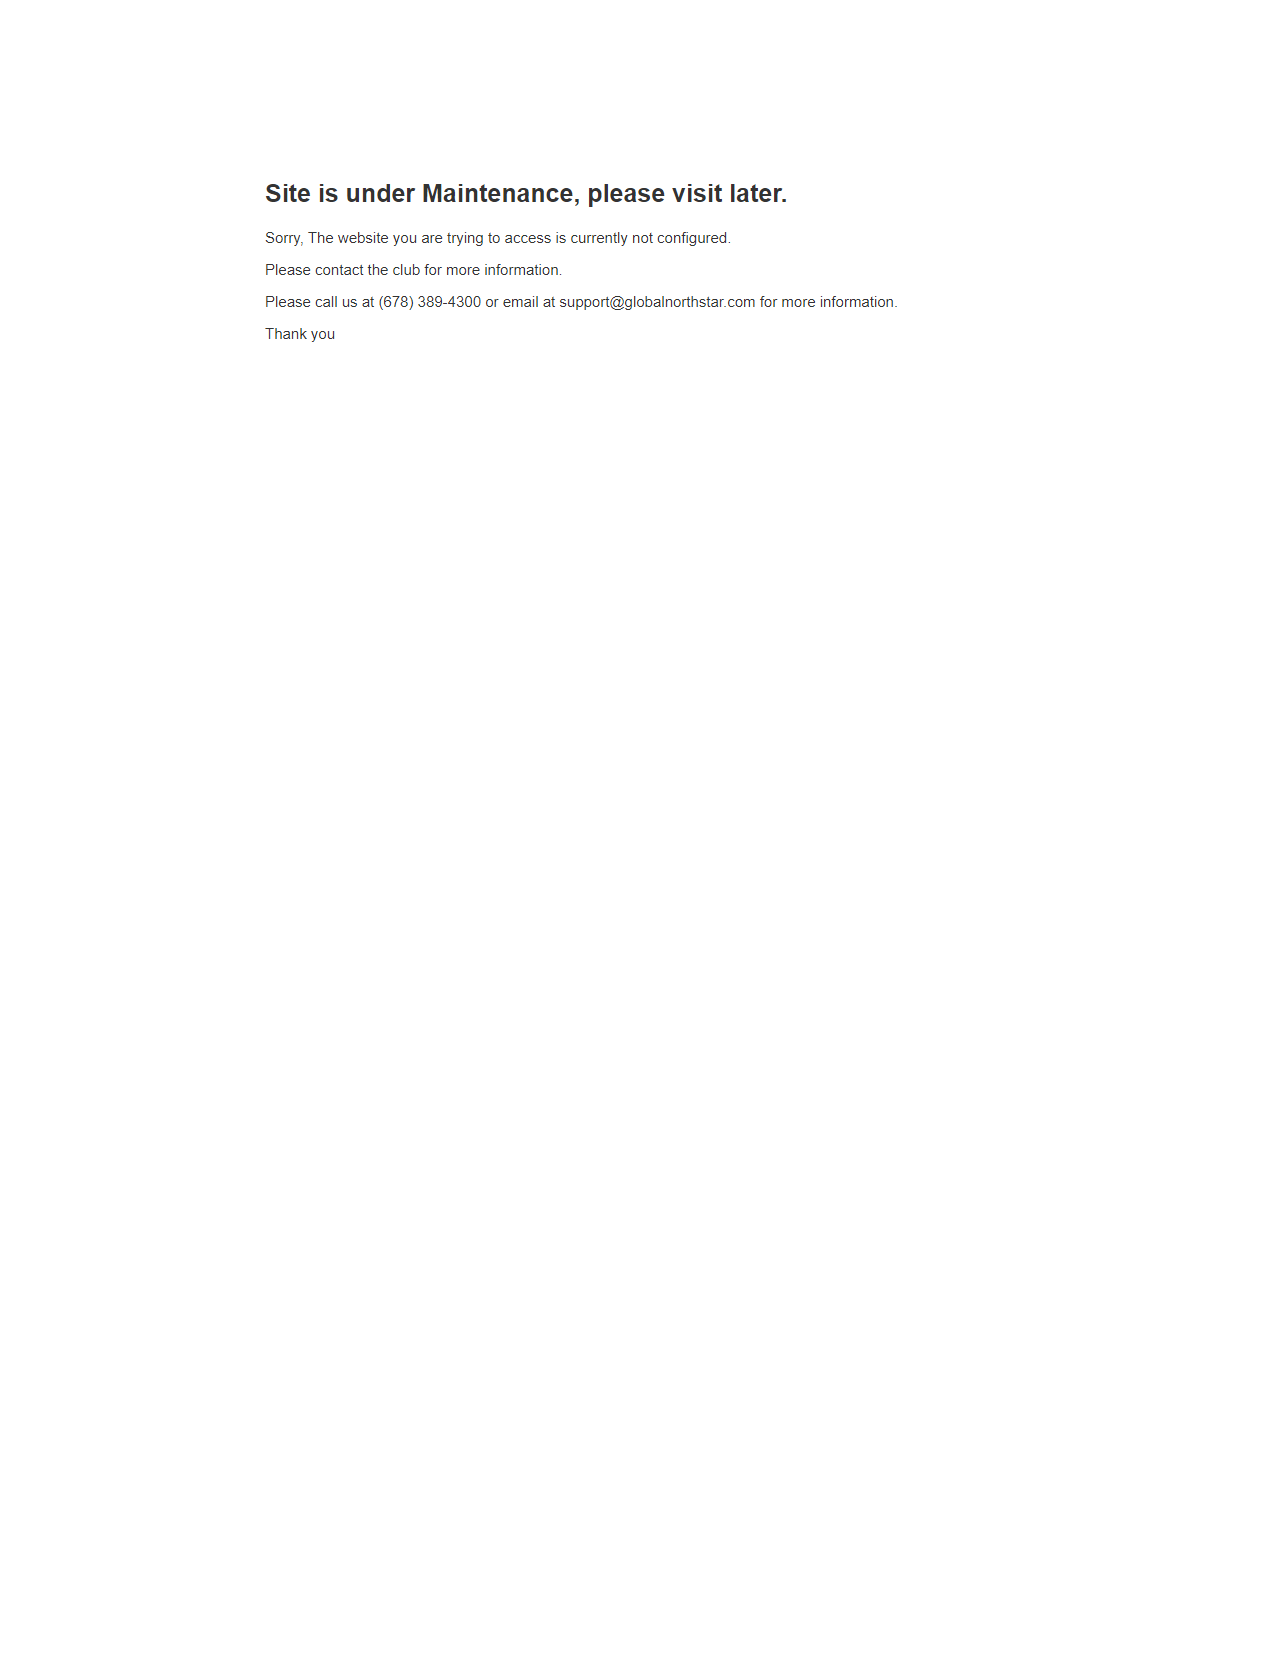 Screenshot Desktop - https://members.springlakegolfclub.net/